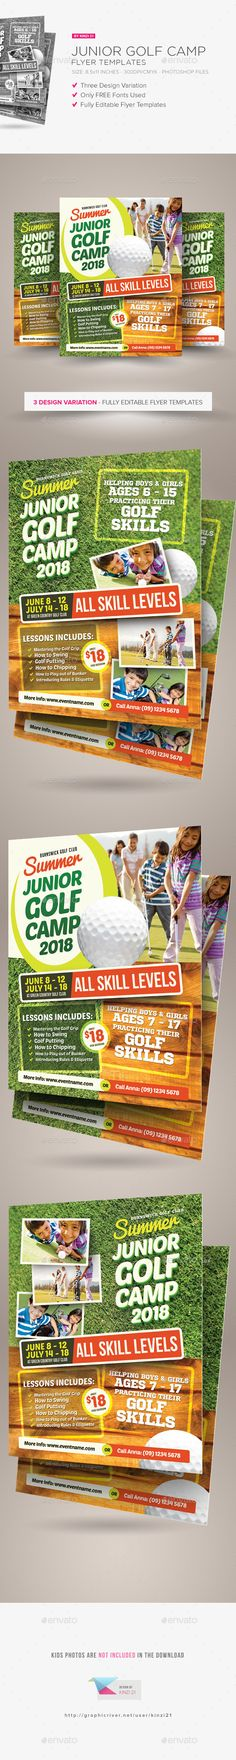 Junior Golf Camp Flyer Templates  #tournament #lessons #championship • Click here to download ! http://graphicriver.net/item/junior-golf-camp-flyer-templates/15383334?ref=pxcr